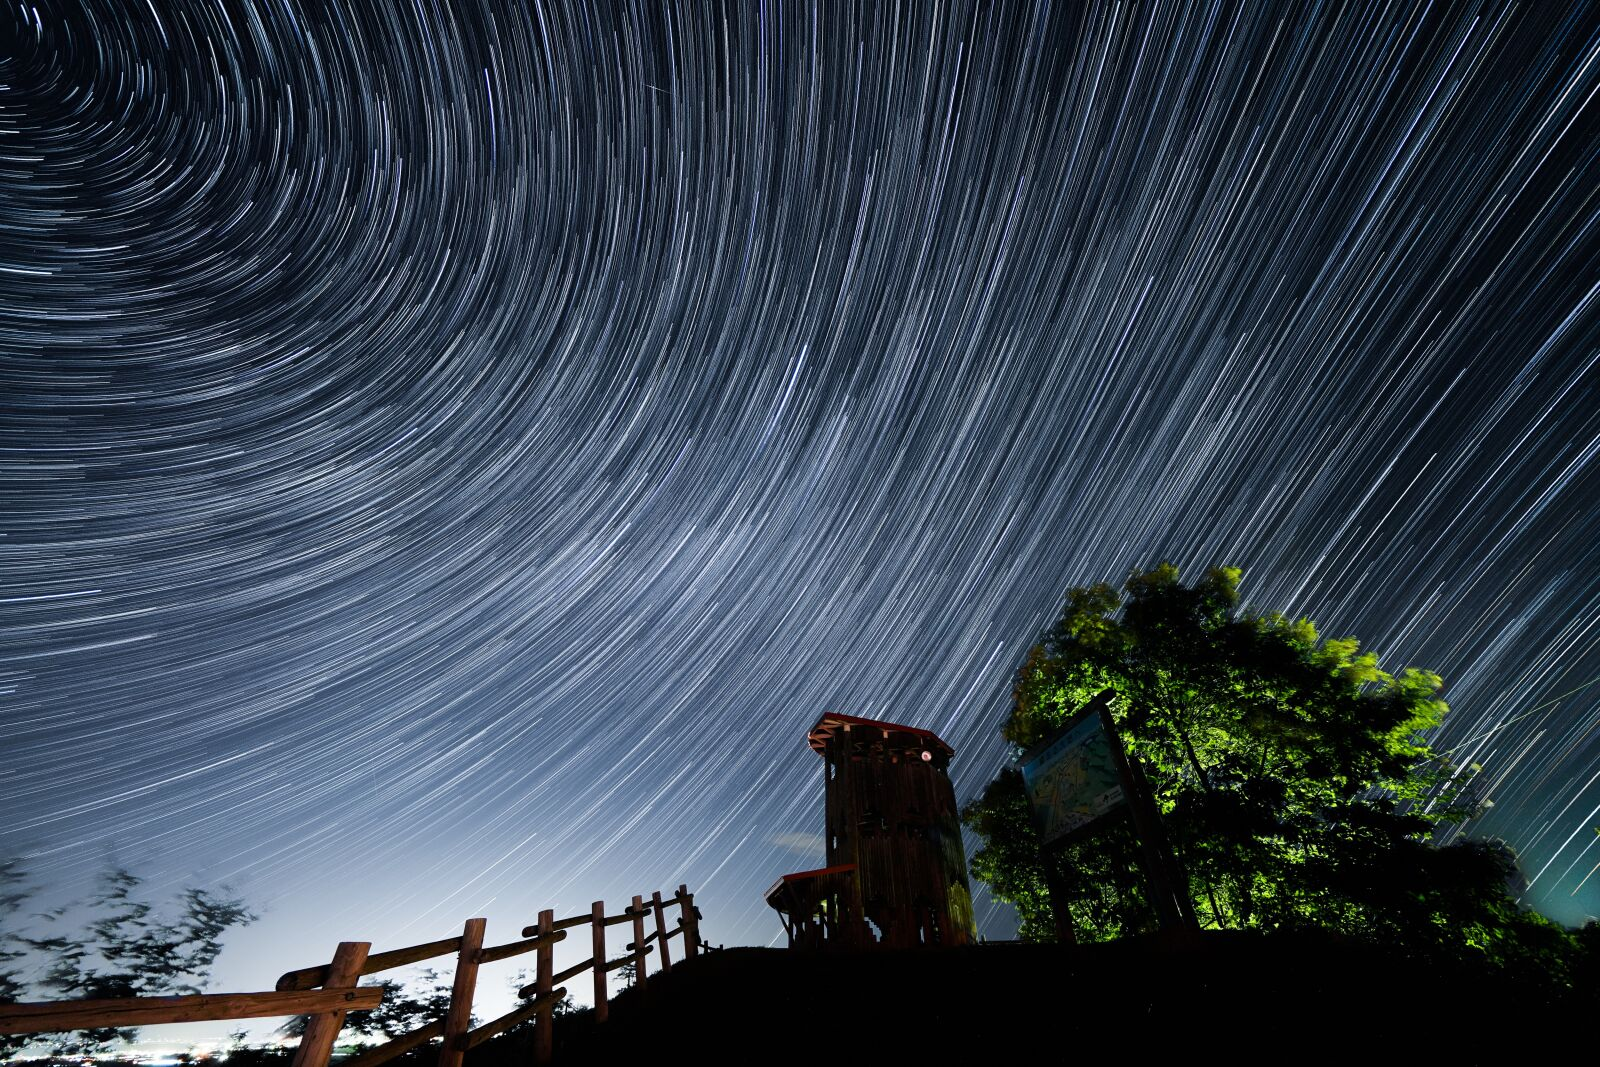 """Sony a7R IV sample photo. """"Star trail, architecture, background"""" photography"""